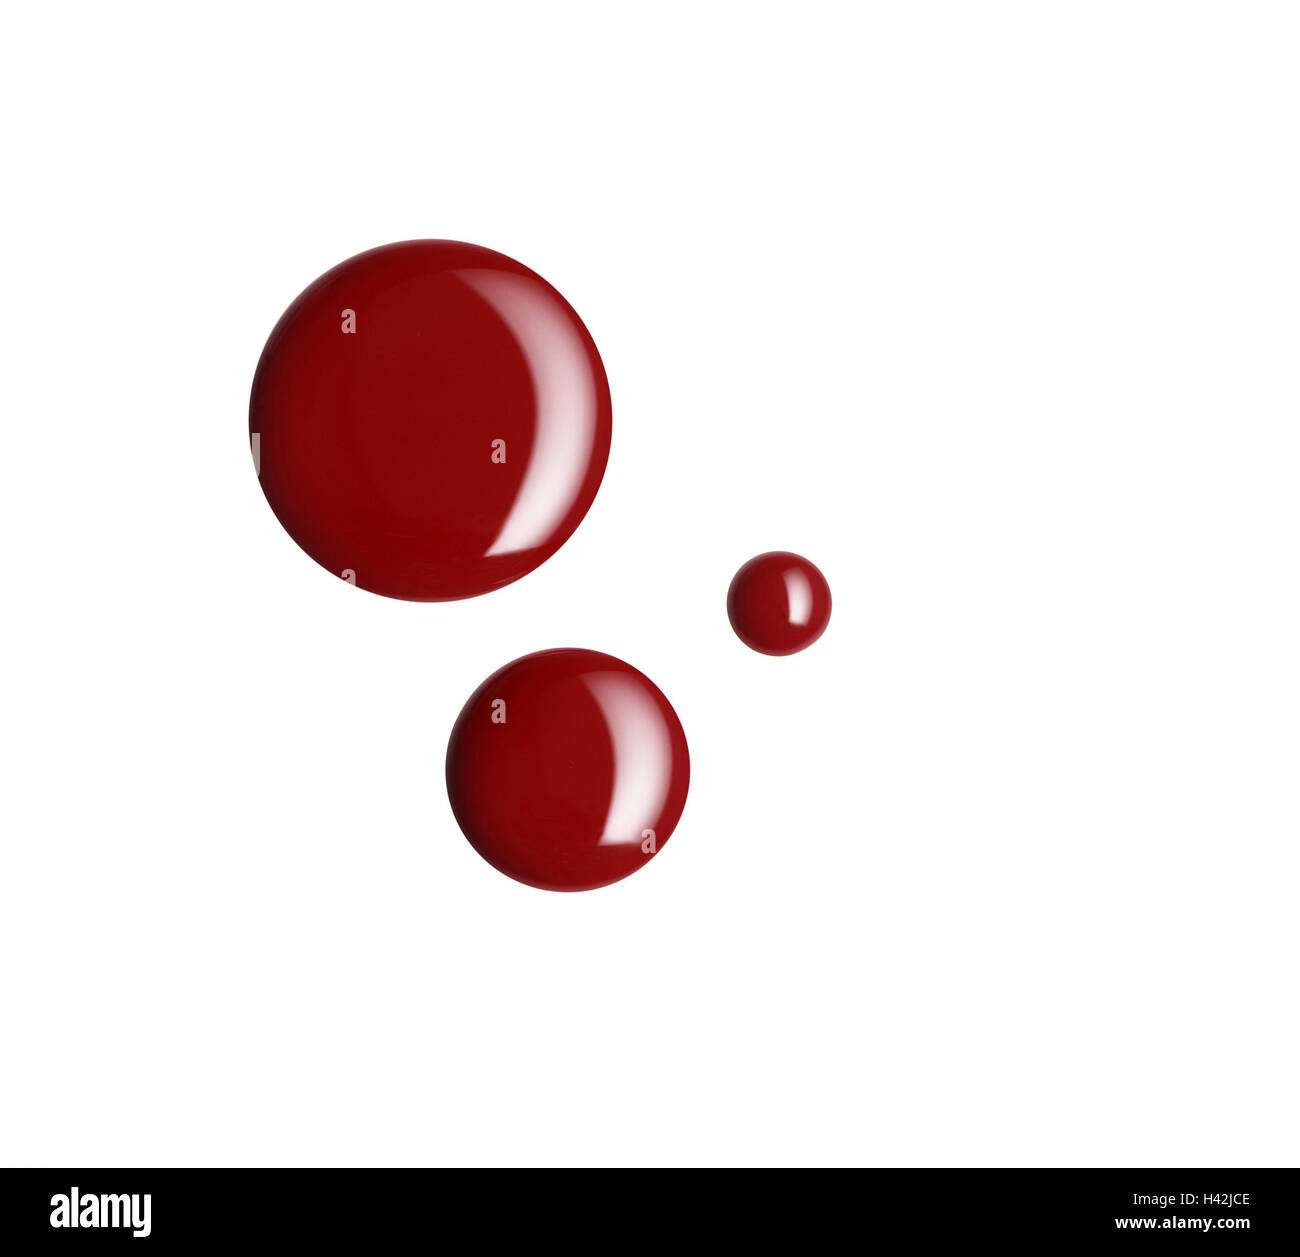 Drop, nail varnish, red, cosmetics, beauty, colour, Beauty, blotch, blot, blots, fluidly, thickly, liquid, brilliantly, - Stock Image